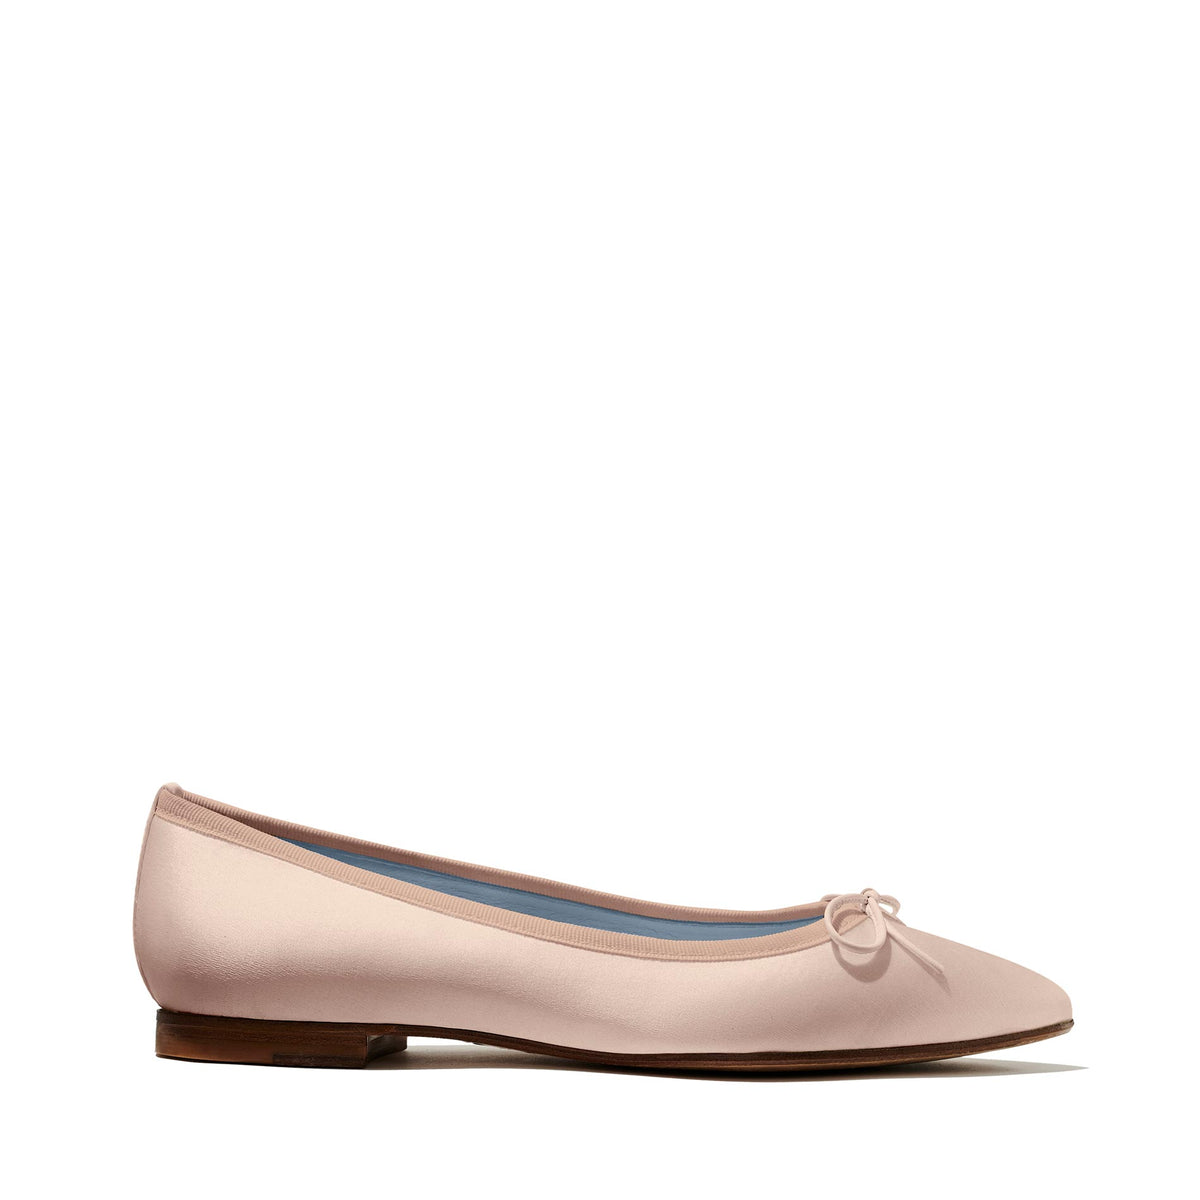 Made-To-Order Bridal: The Pointe in Blush Satin